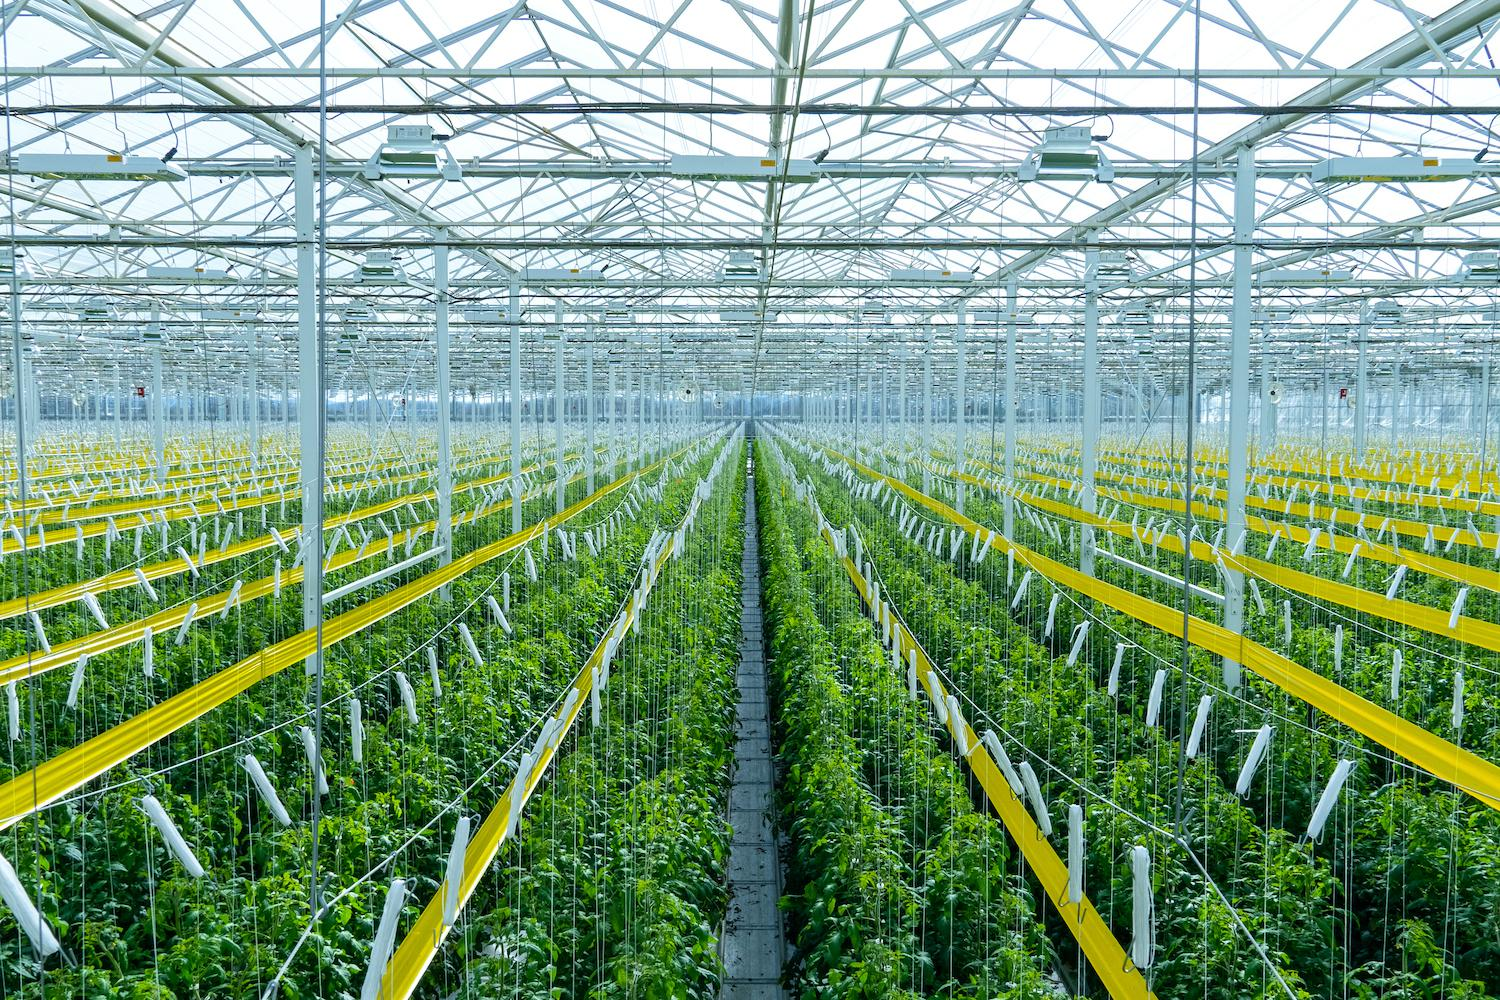 AppHarvest aims to have as many as 15 greenhouses built in the next five years.